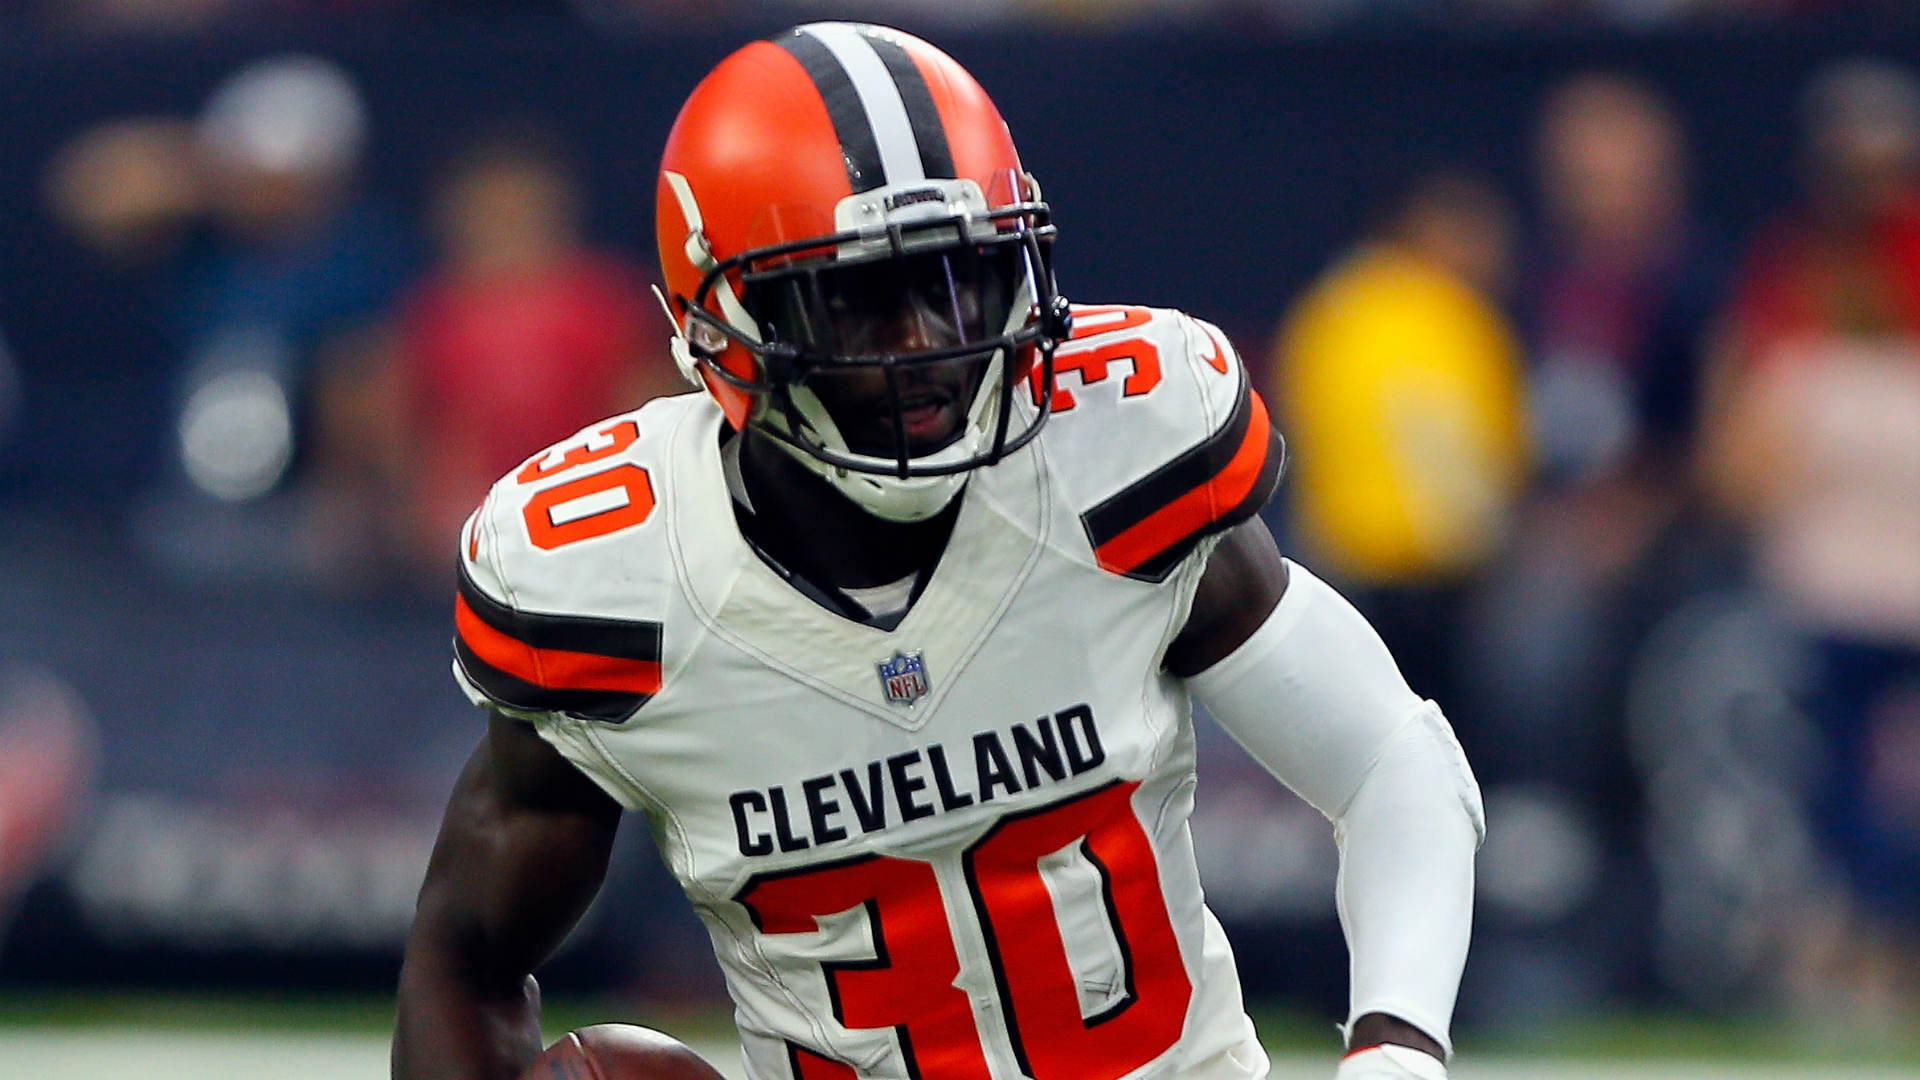 Patriots Acquire Cornerback Jason McCourty - Devin's Twin Brother - In Trade With Browns